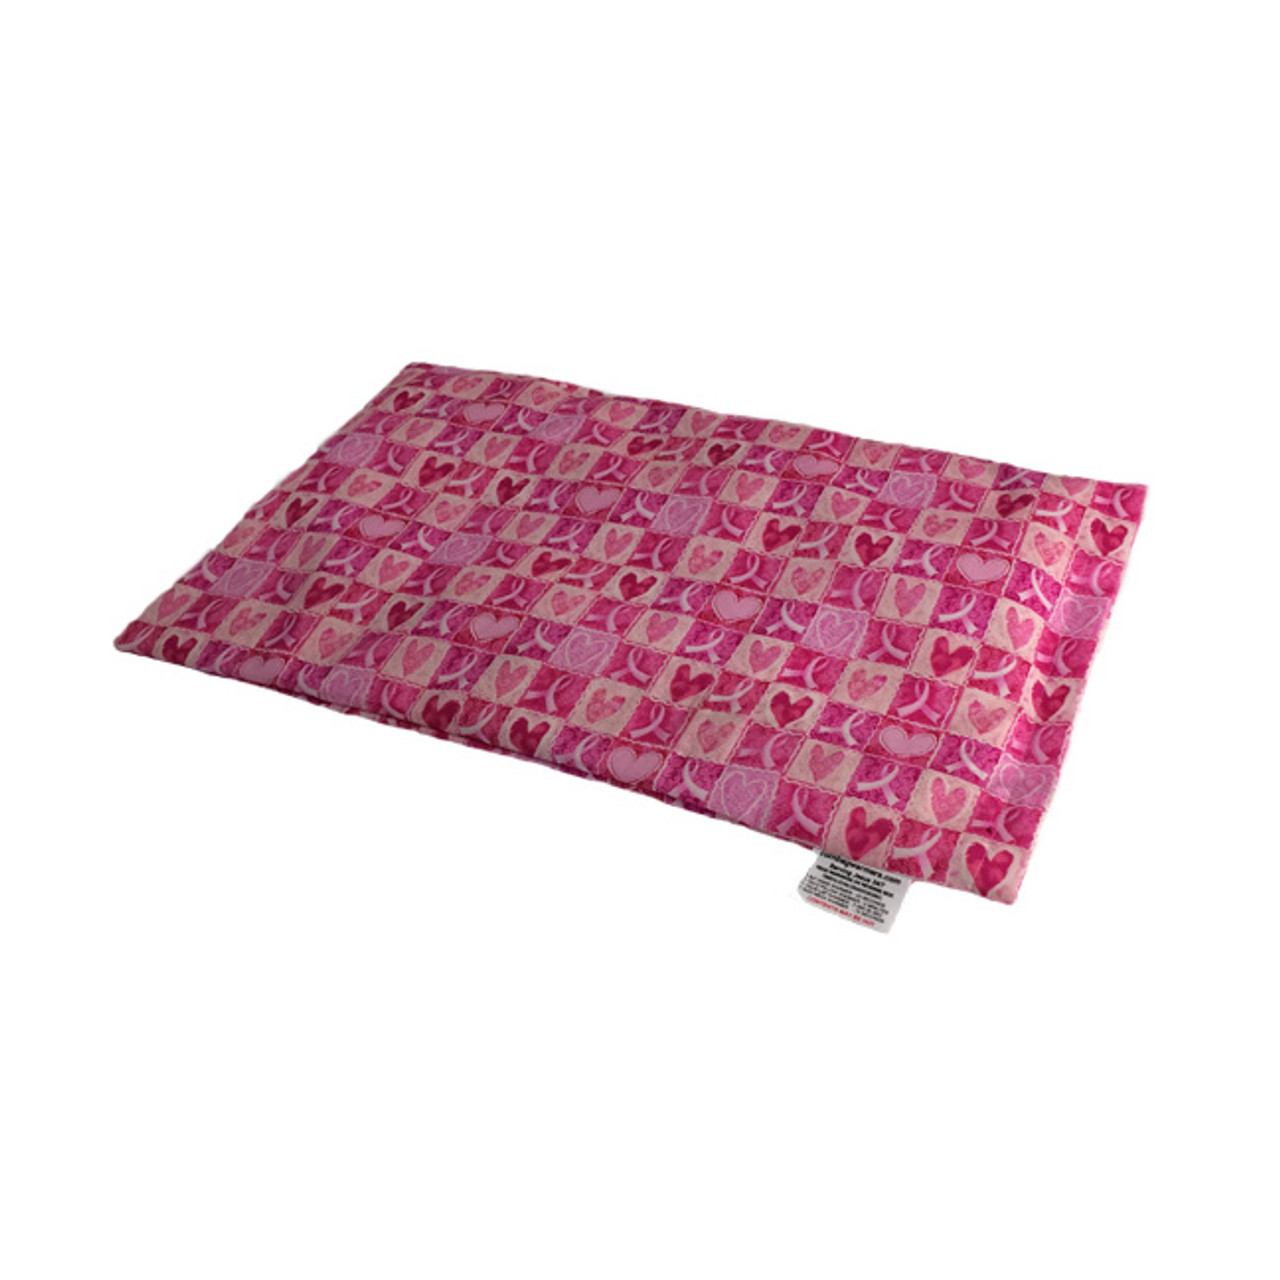 Hope & Love- Breast Cancer Awareness Lap Warmer Microwave Heating Pad